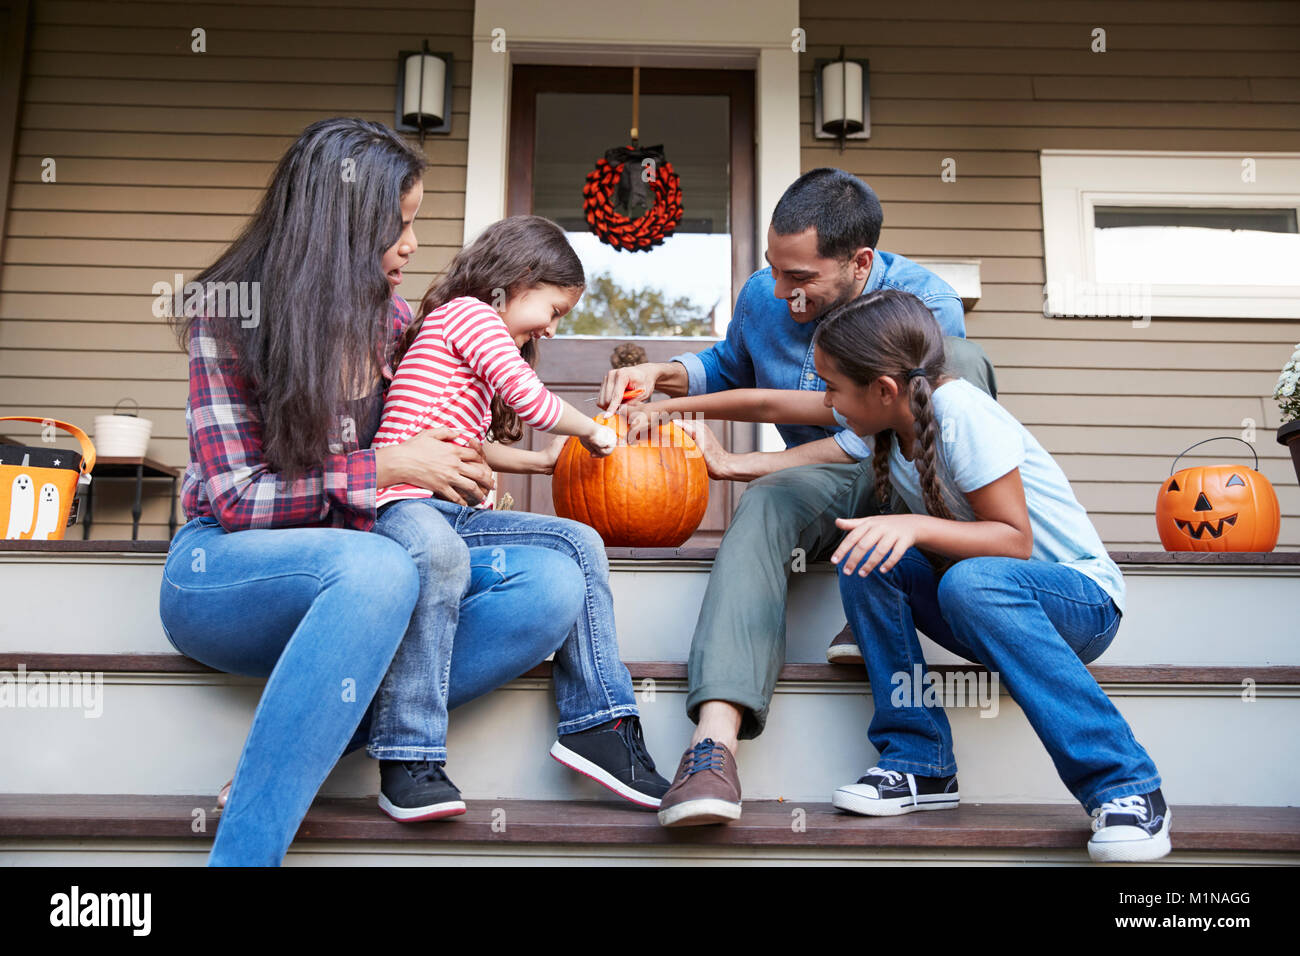 Family Carving Halloween Pumpkin On House Steps - Stock Image